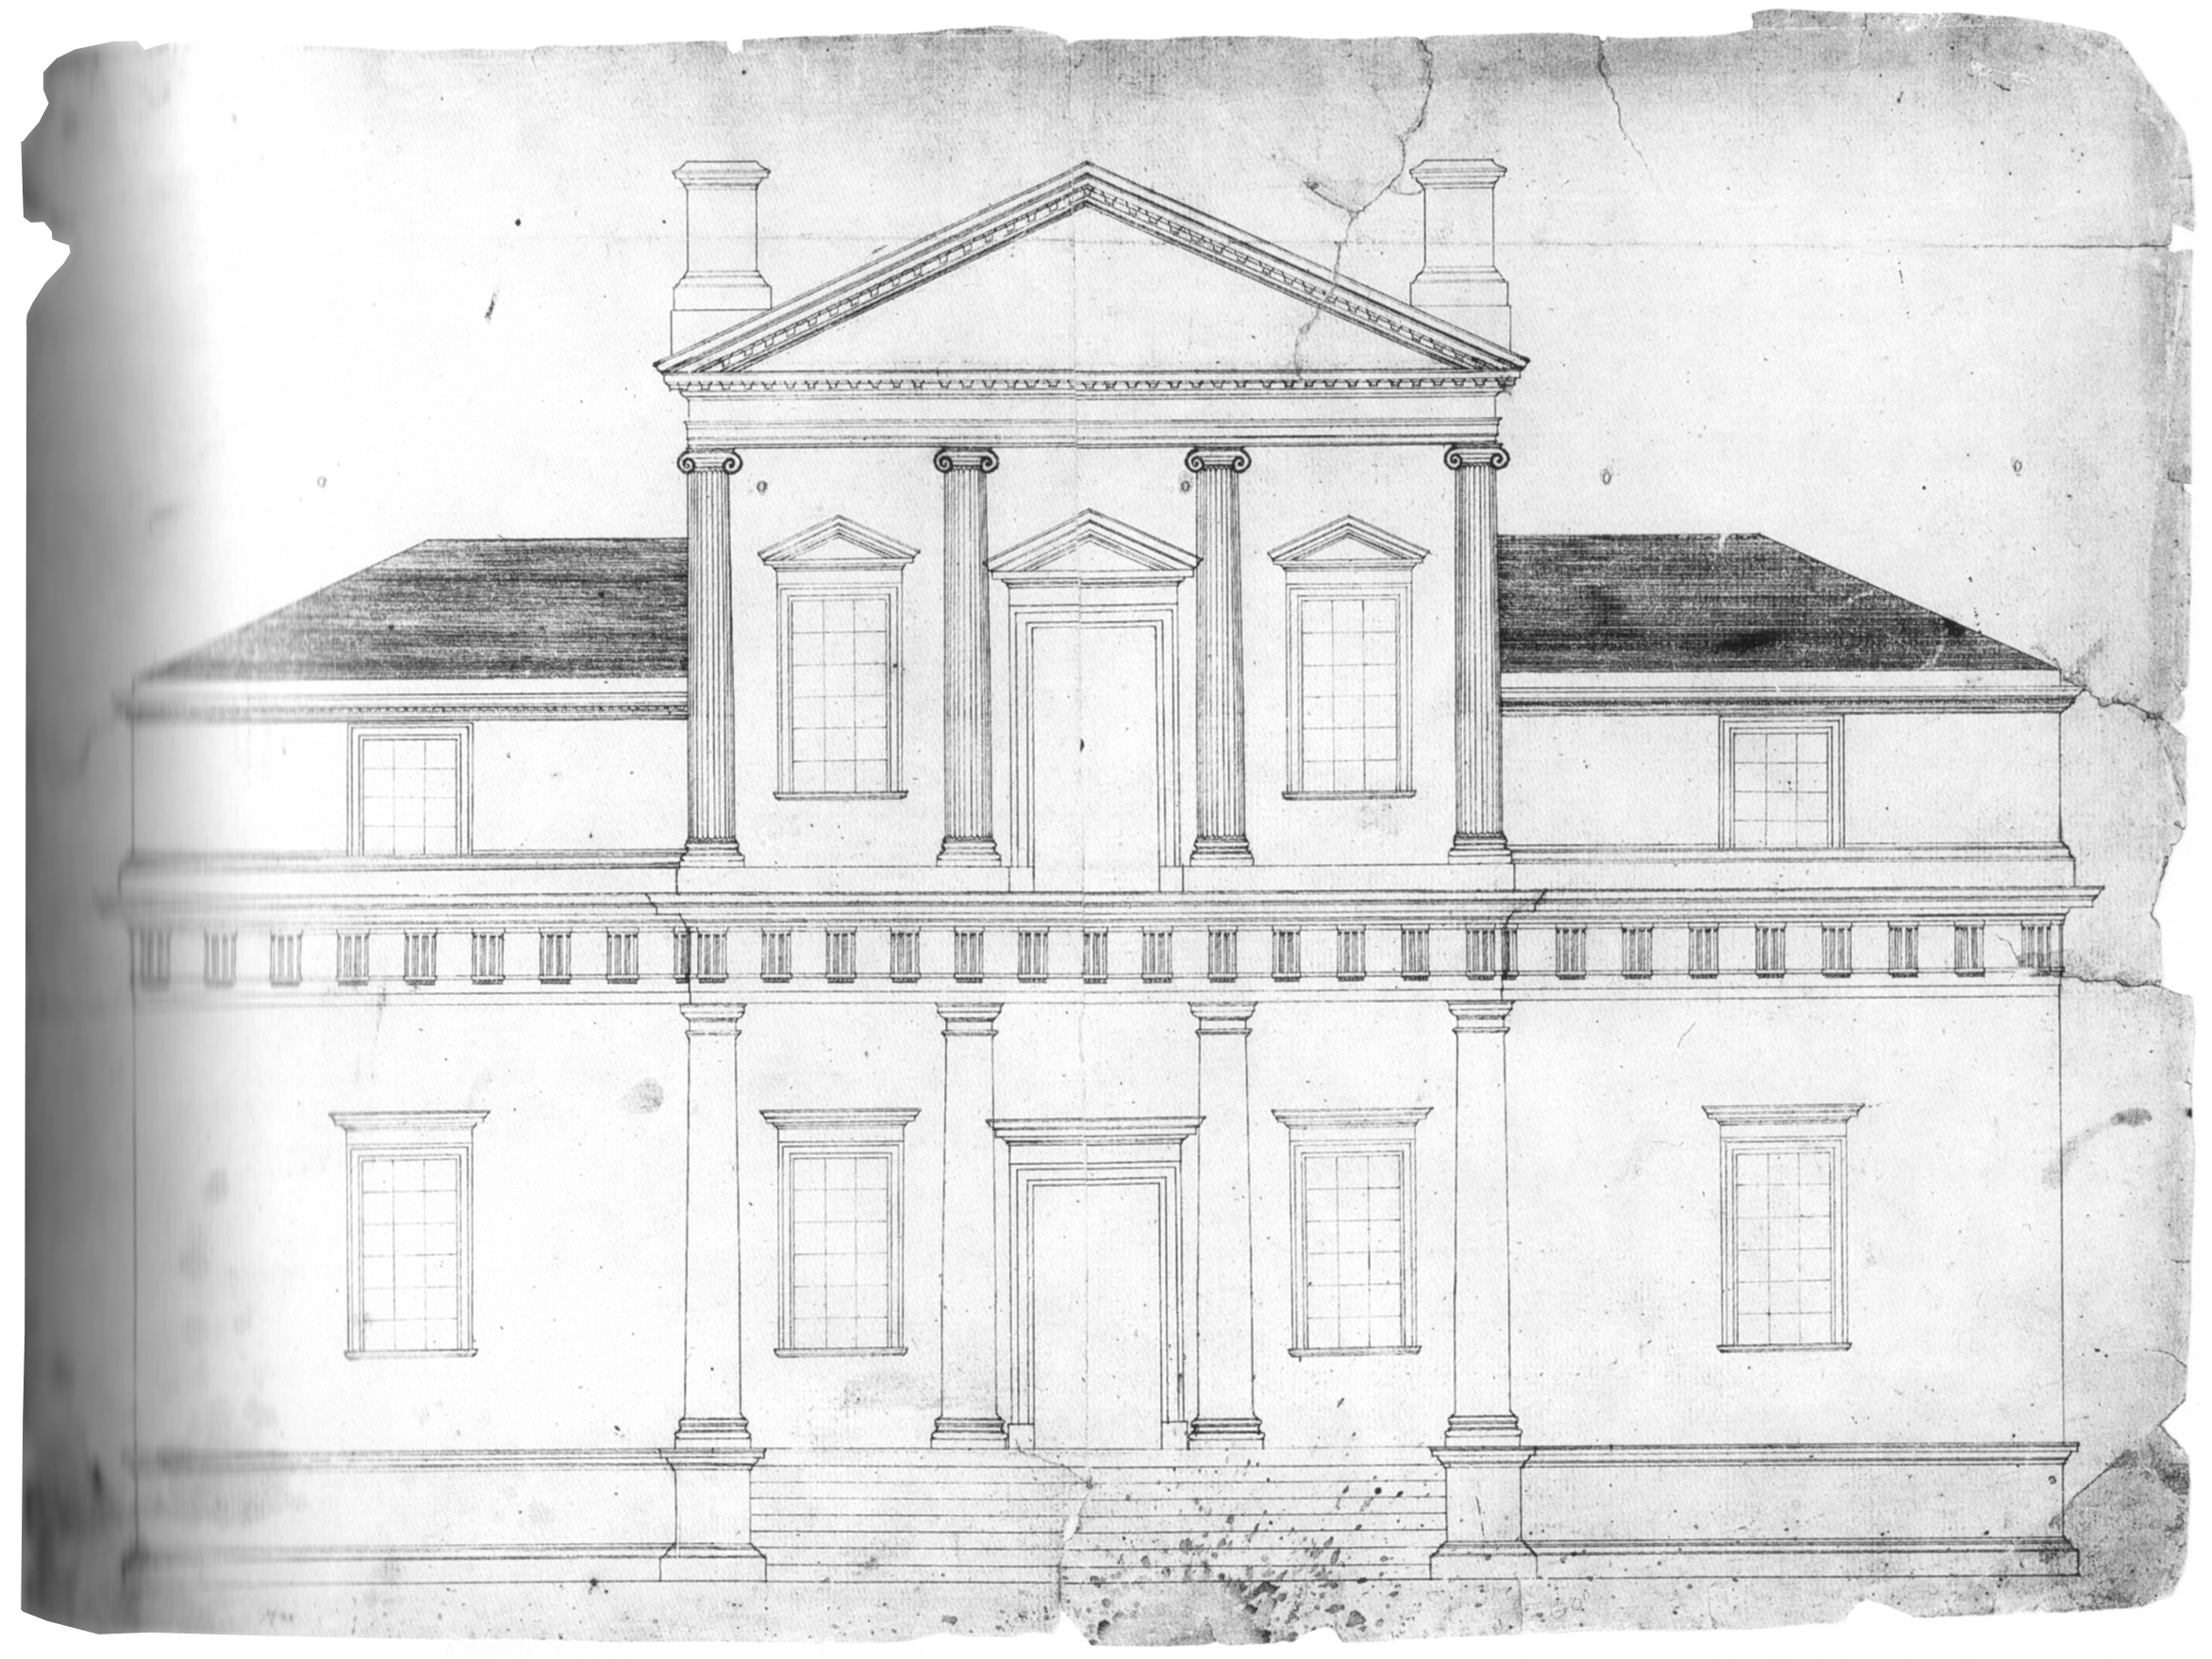 Drawn bulding  neoclassical architecture Pin and more on images